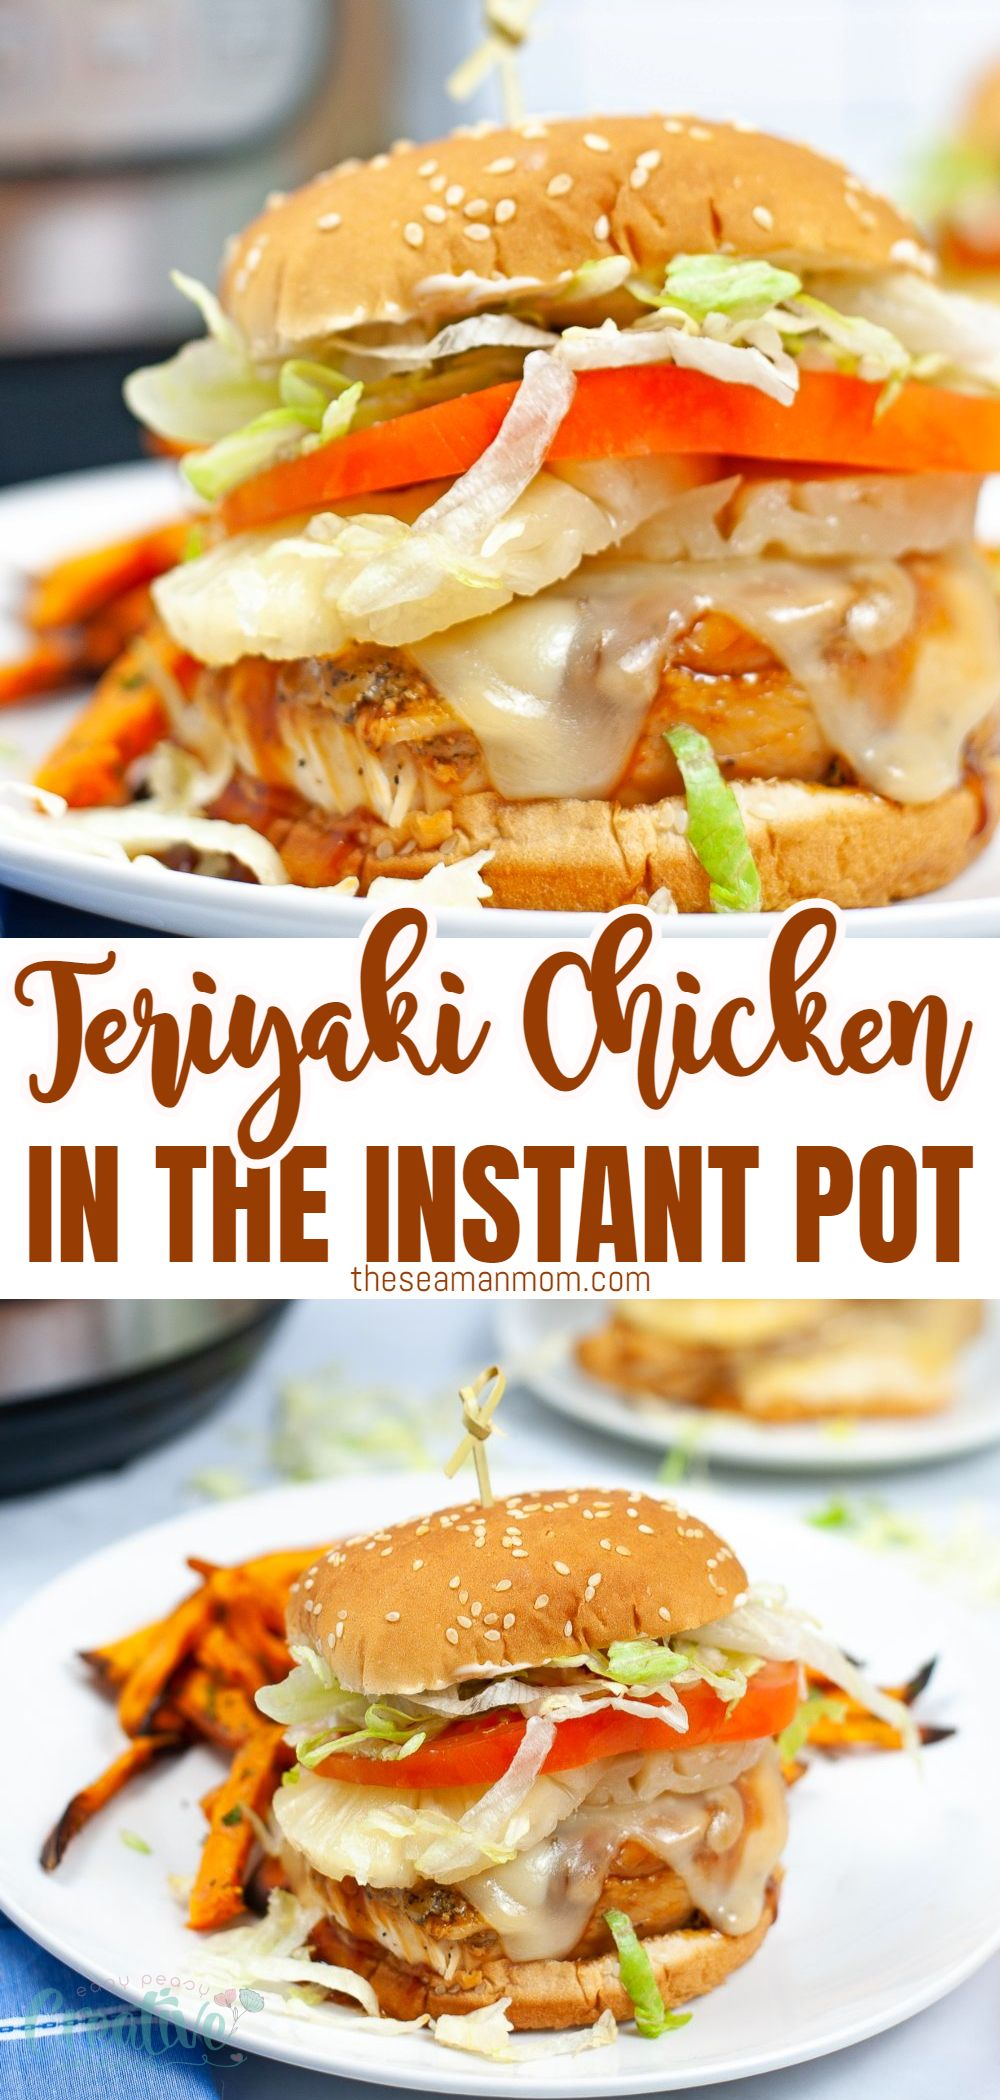 With the help of your pressure cooker, you can whip up a flavorful chicken breast just like the on one the Teriyaki Chicken Burger at Red Robin. You'll love how easy this Instant Pot teriyaki chicken is to make! via @petroneagu